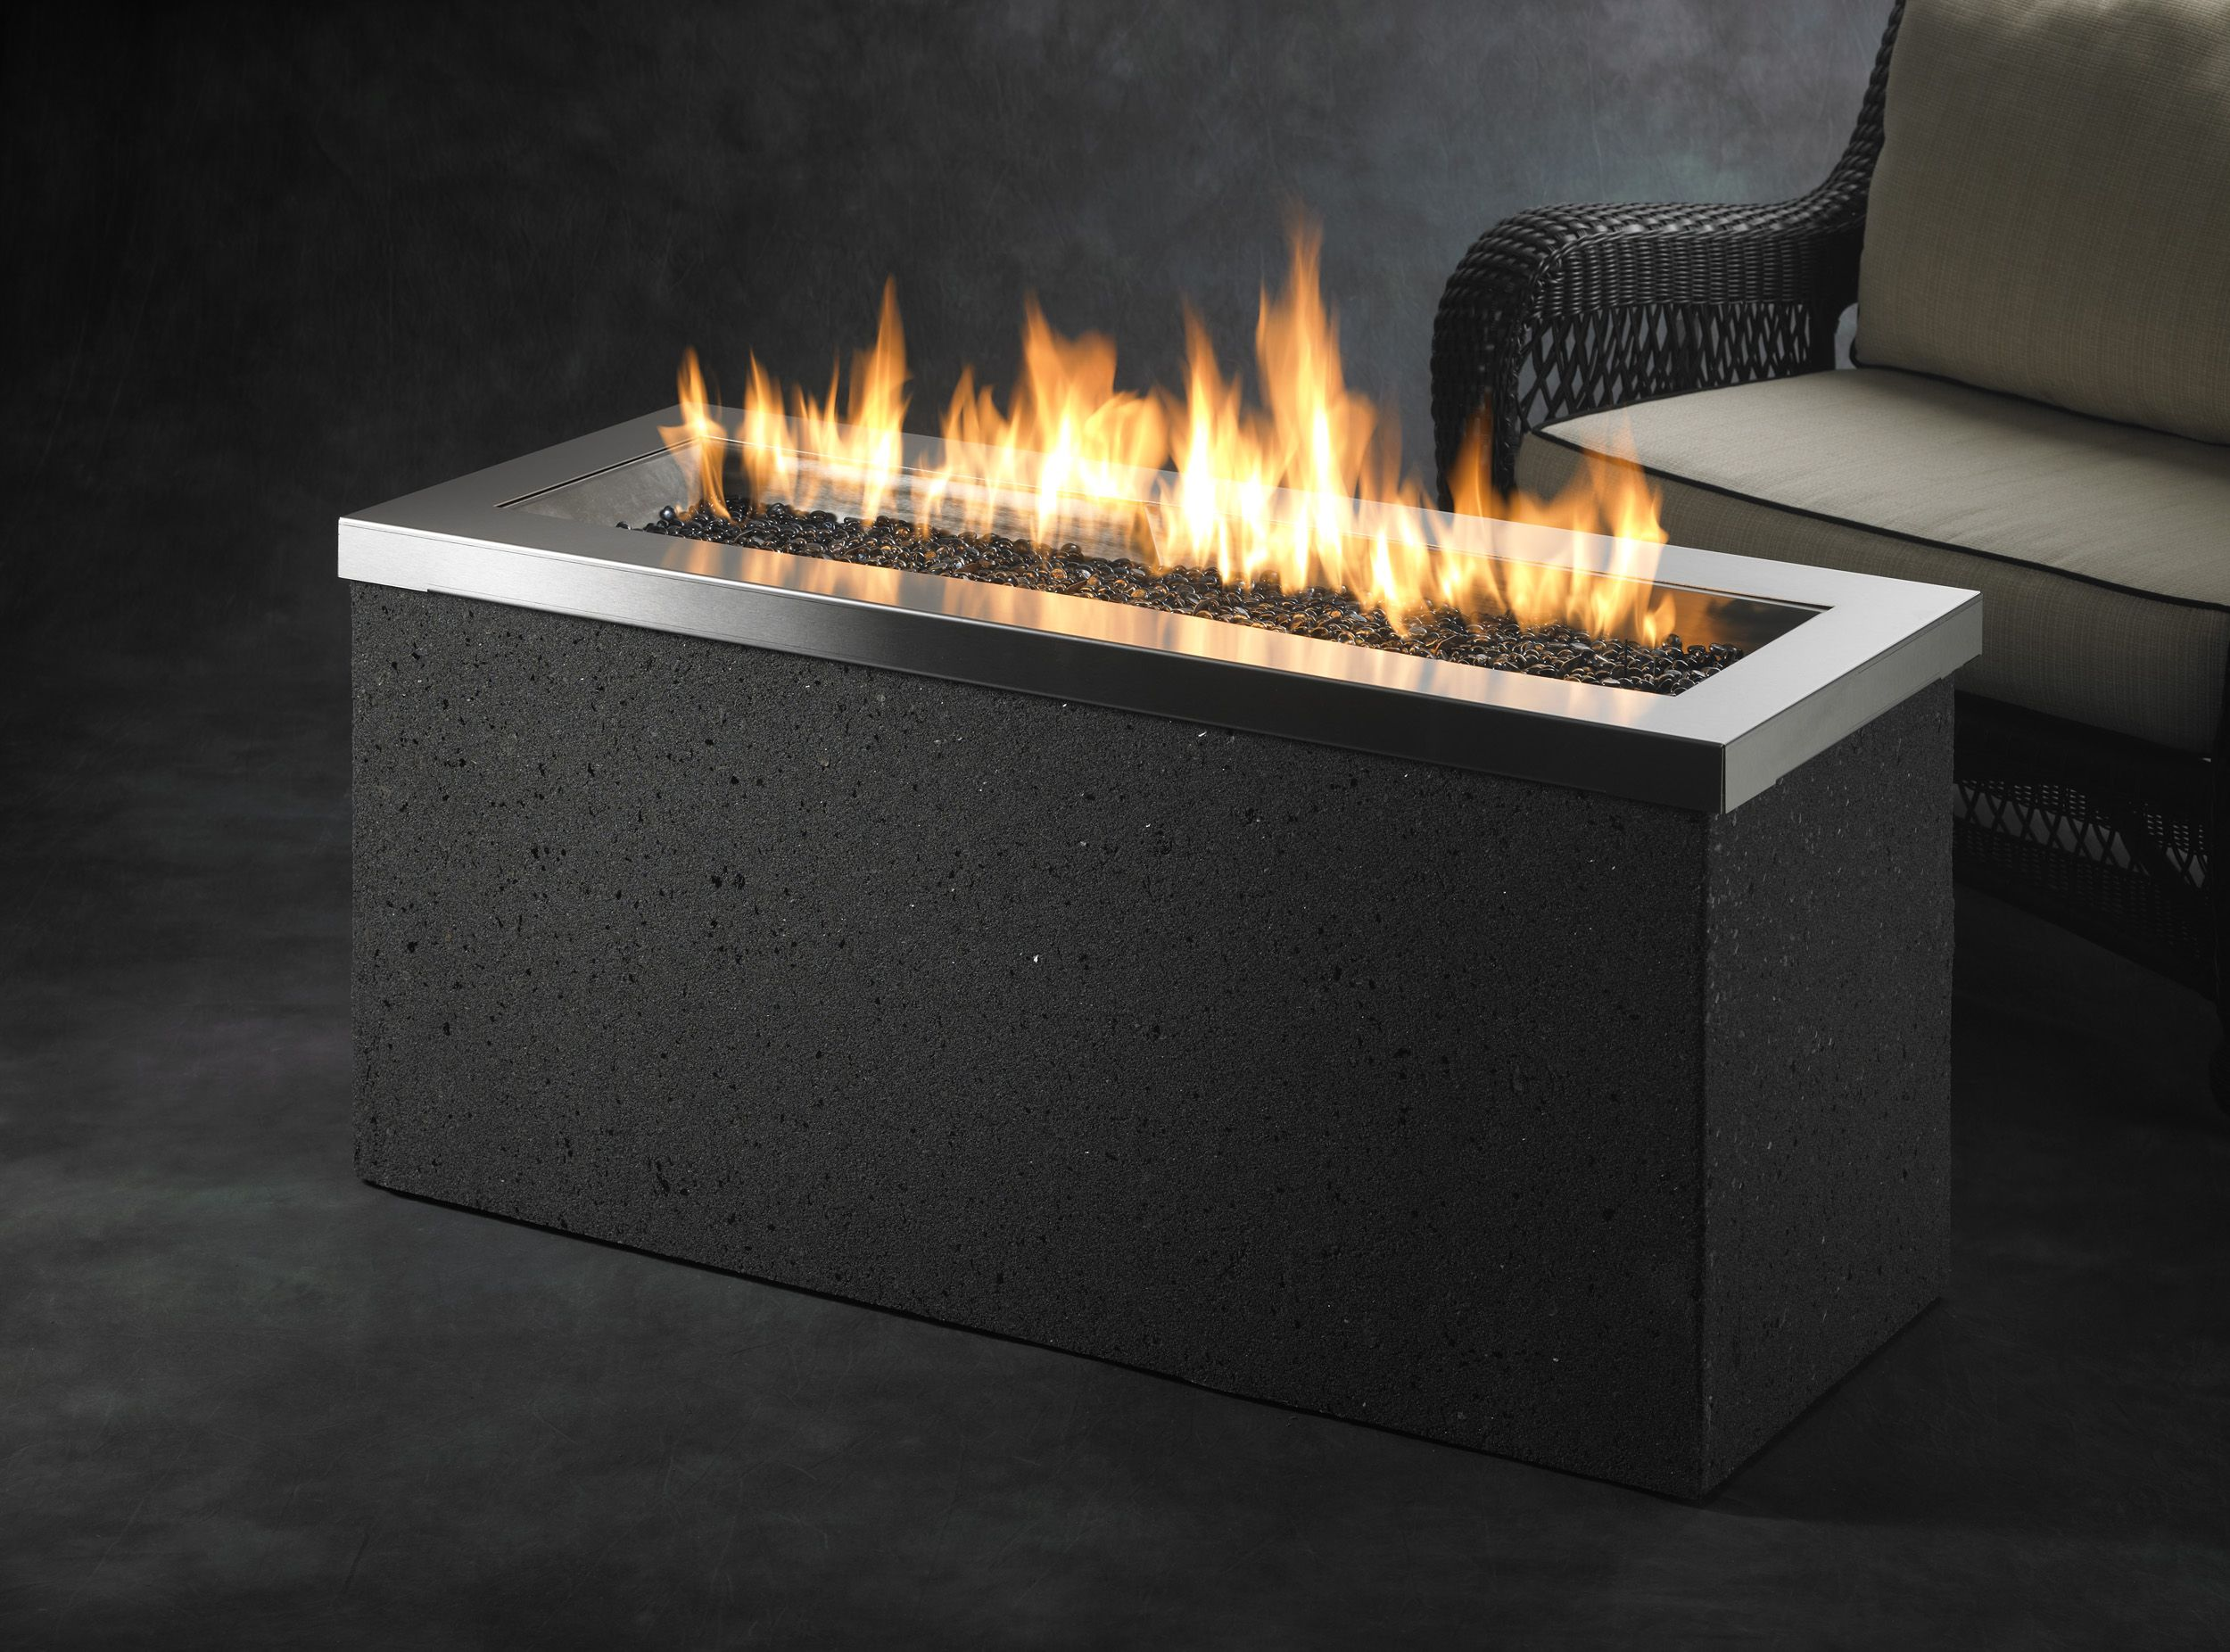 Electric fire pit greatroom company adds 12 new gas fire pit products for spring